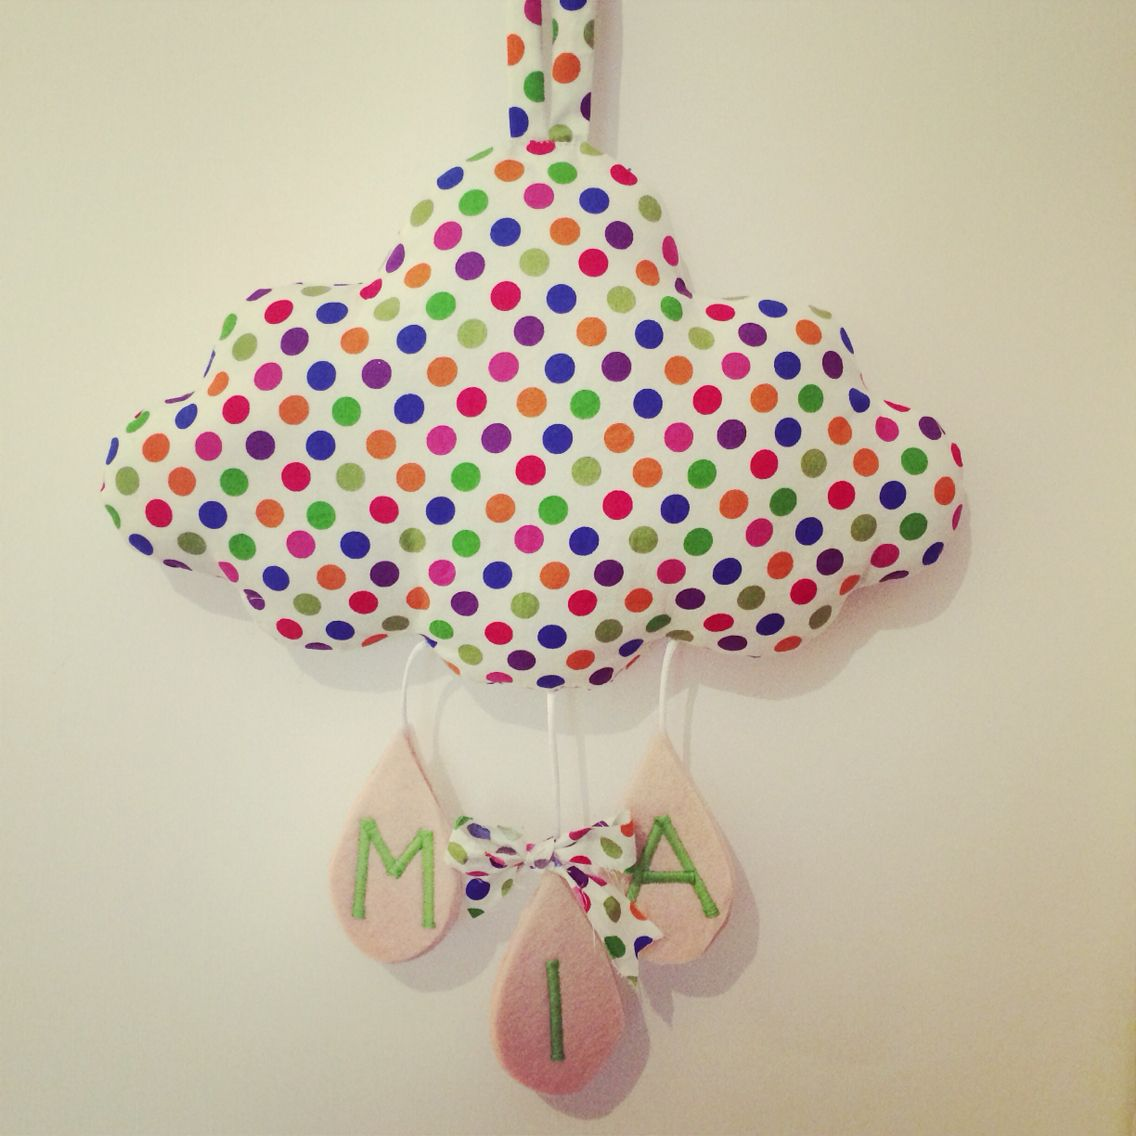 Birth cloud , nursery, baby decor , la testa tra le nuvole handmade , kids decor